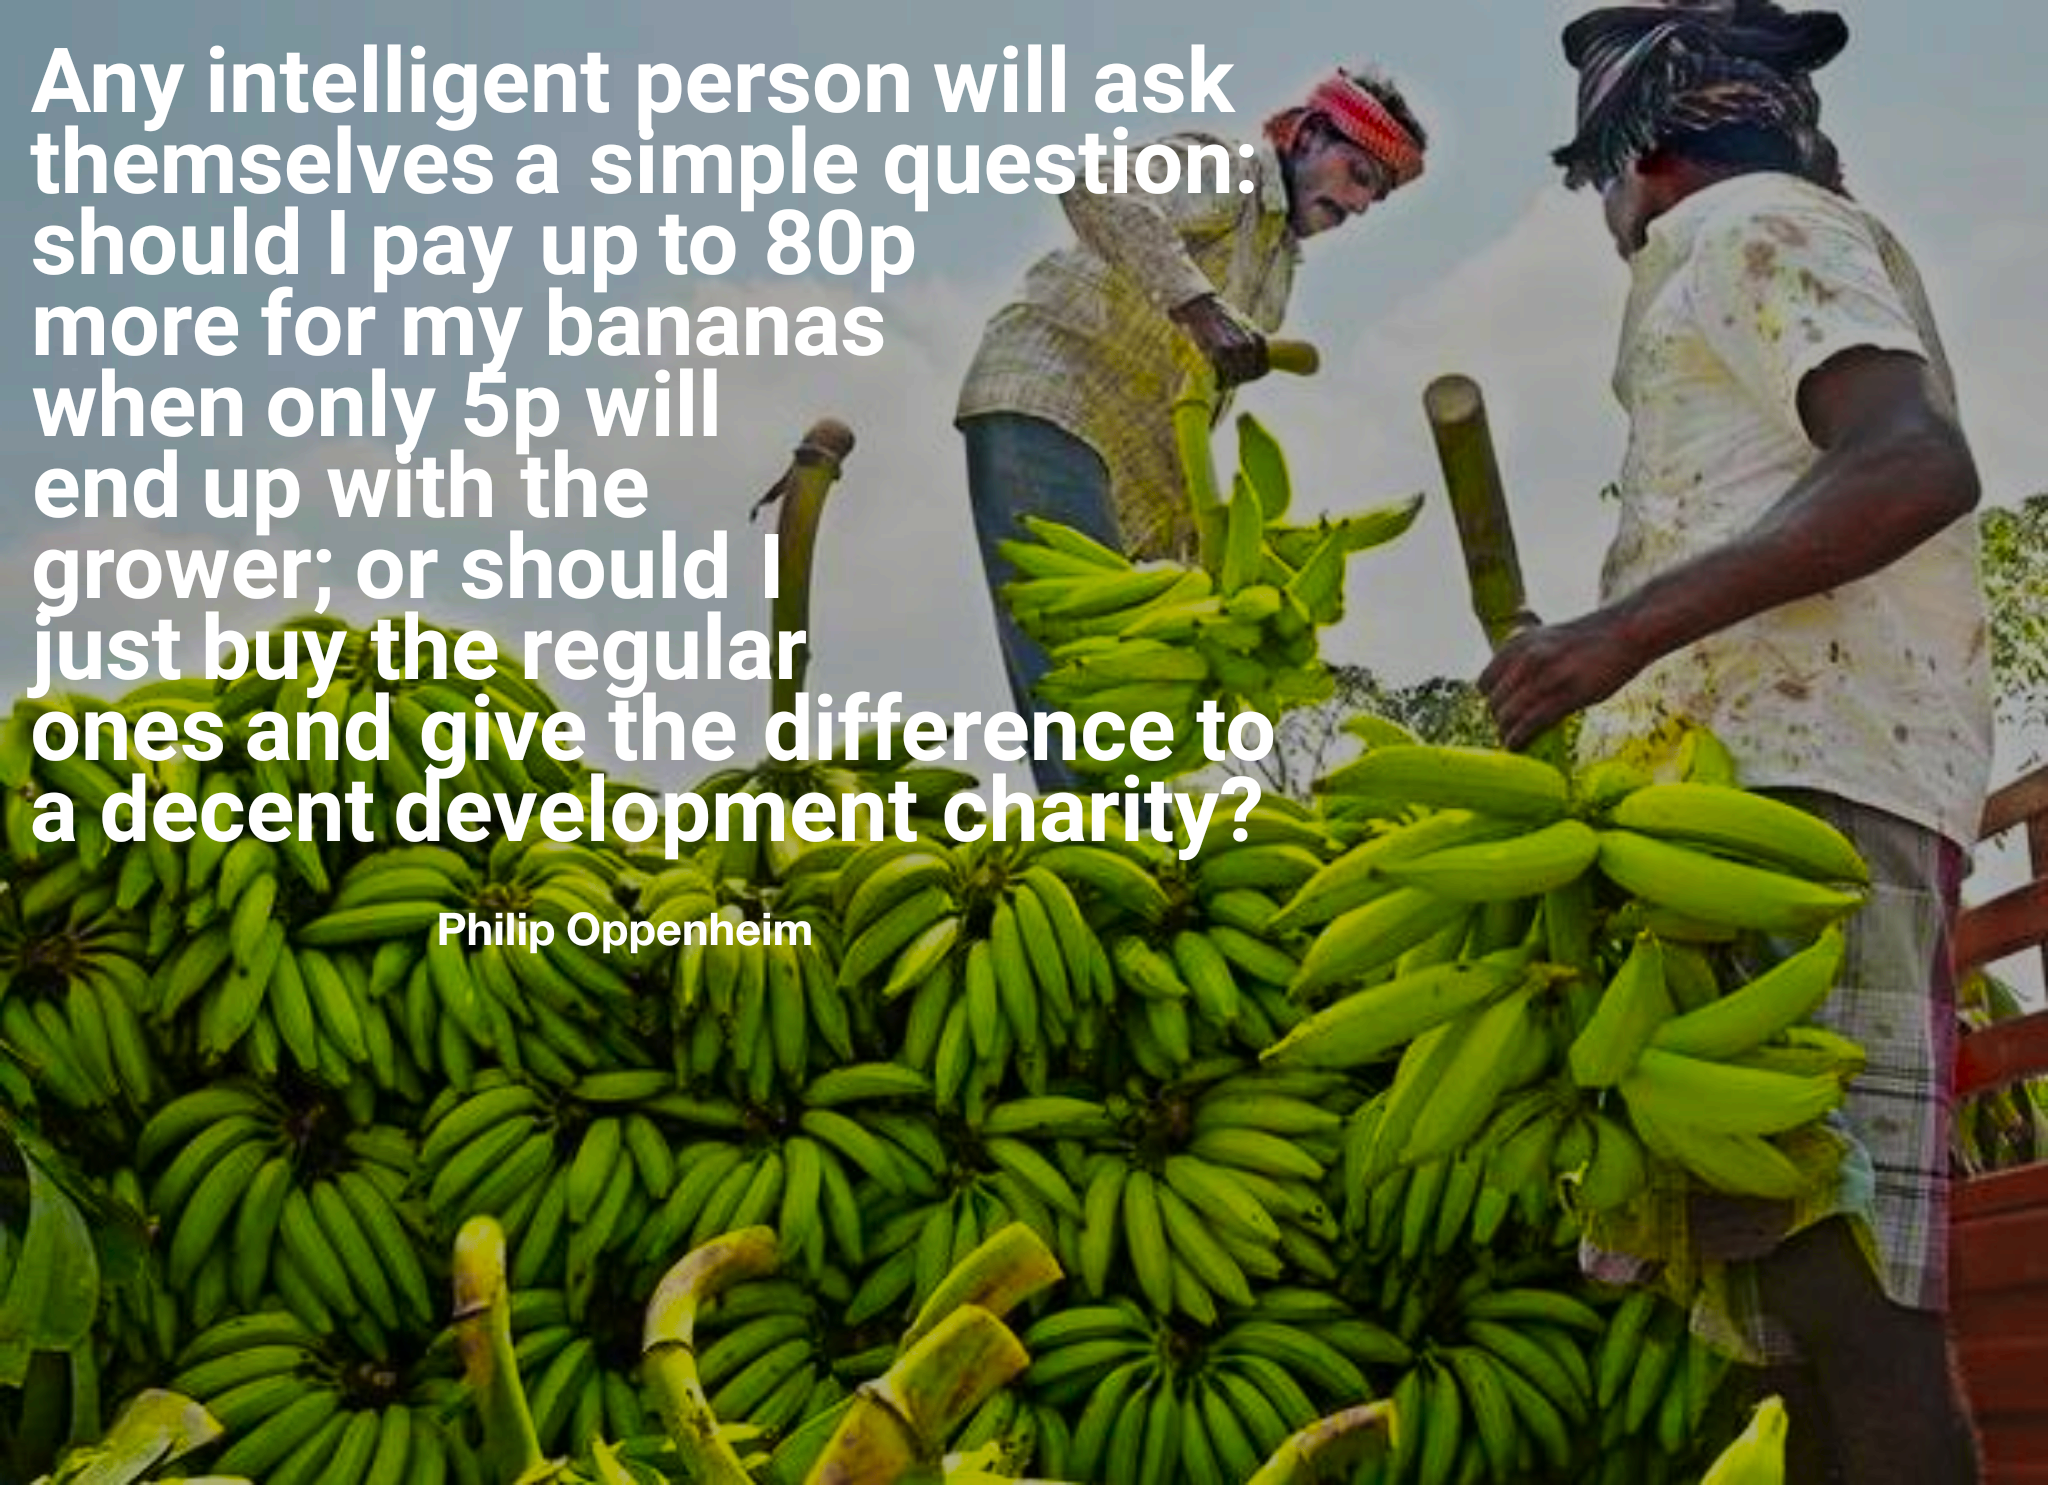 """""""Any intelligent person will ask themselves a simple question: Should I pay up to 80p more for my bananas when only 5p will end up with the grower…"""" -Philip Oppenheim [2048×1485]"""